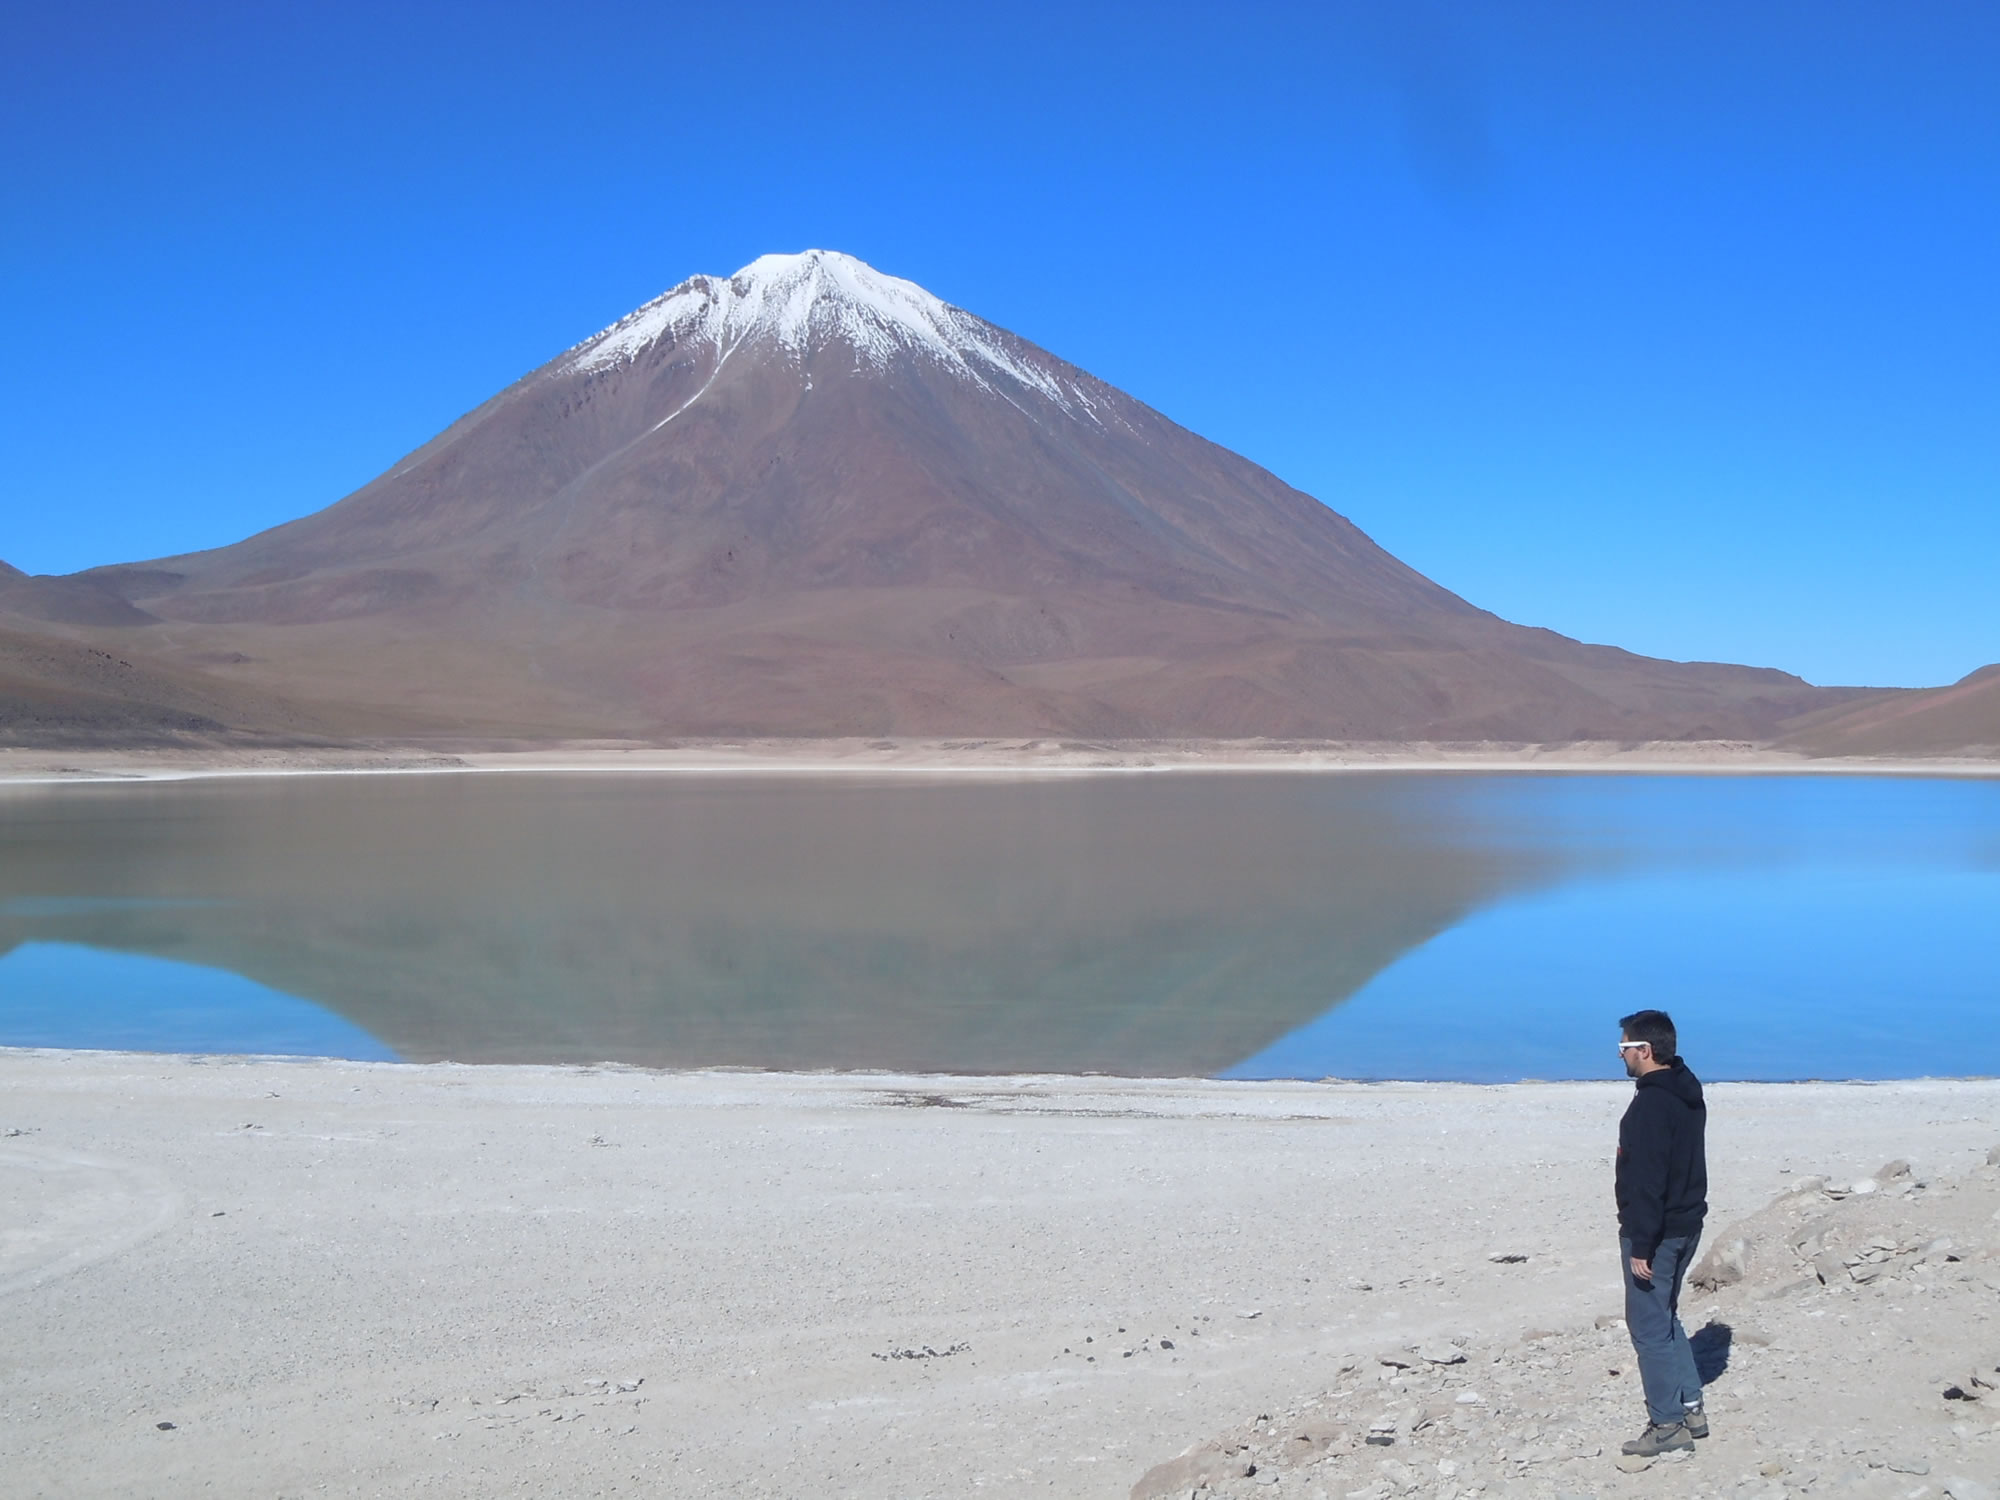 The Licancabur volcano is rfelected in the Green Lagoon